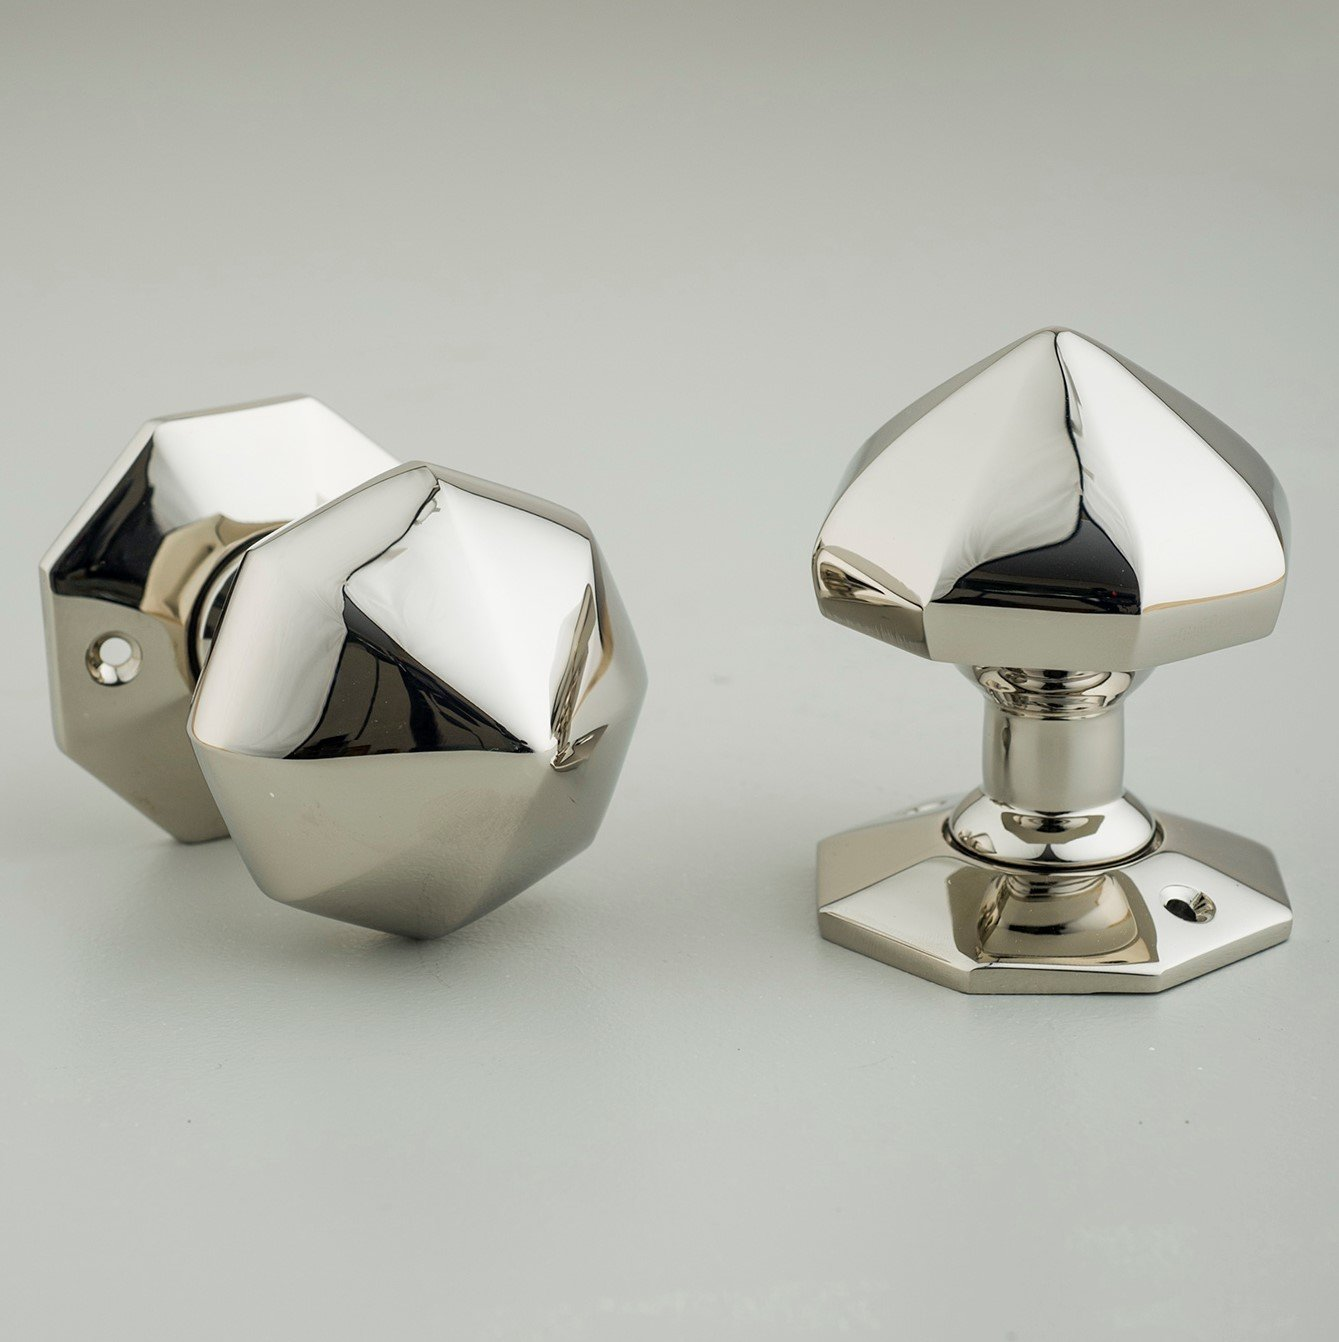 Pointed Octagonal Door Knobs (Pair) - Polished Nickel